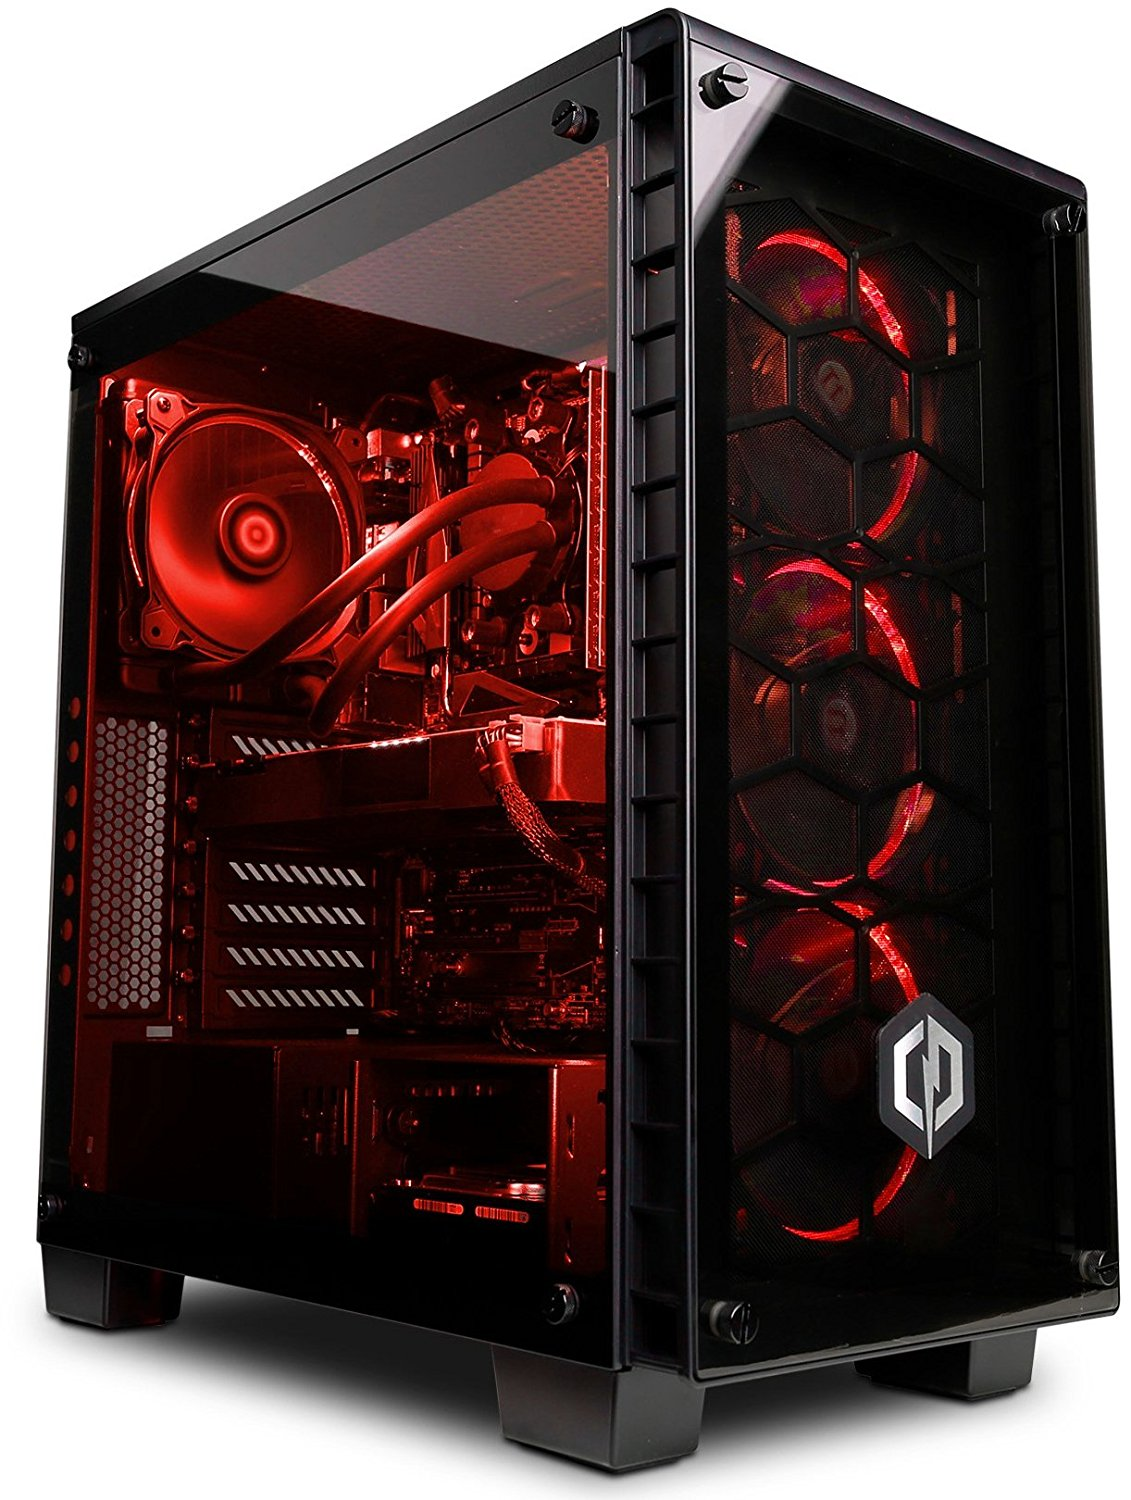 CyberpowerPC Centurion i7-2080 Gaming PC